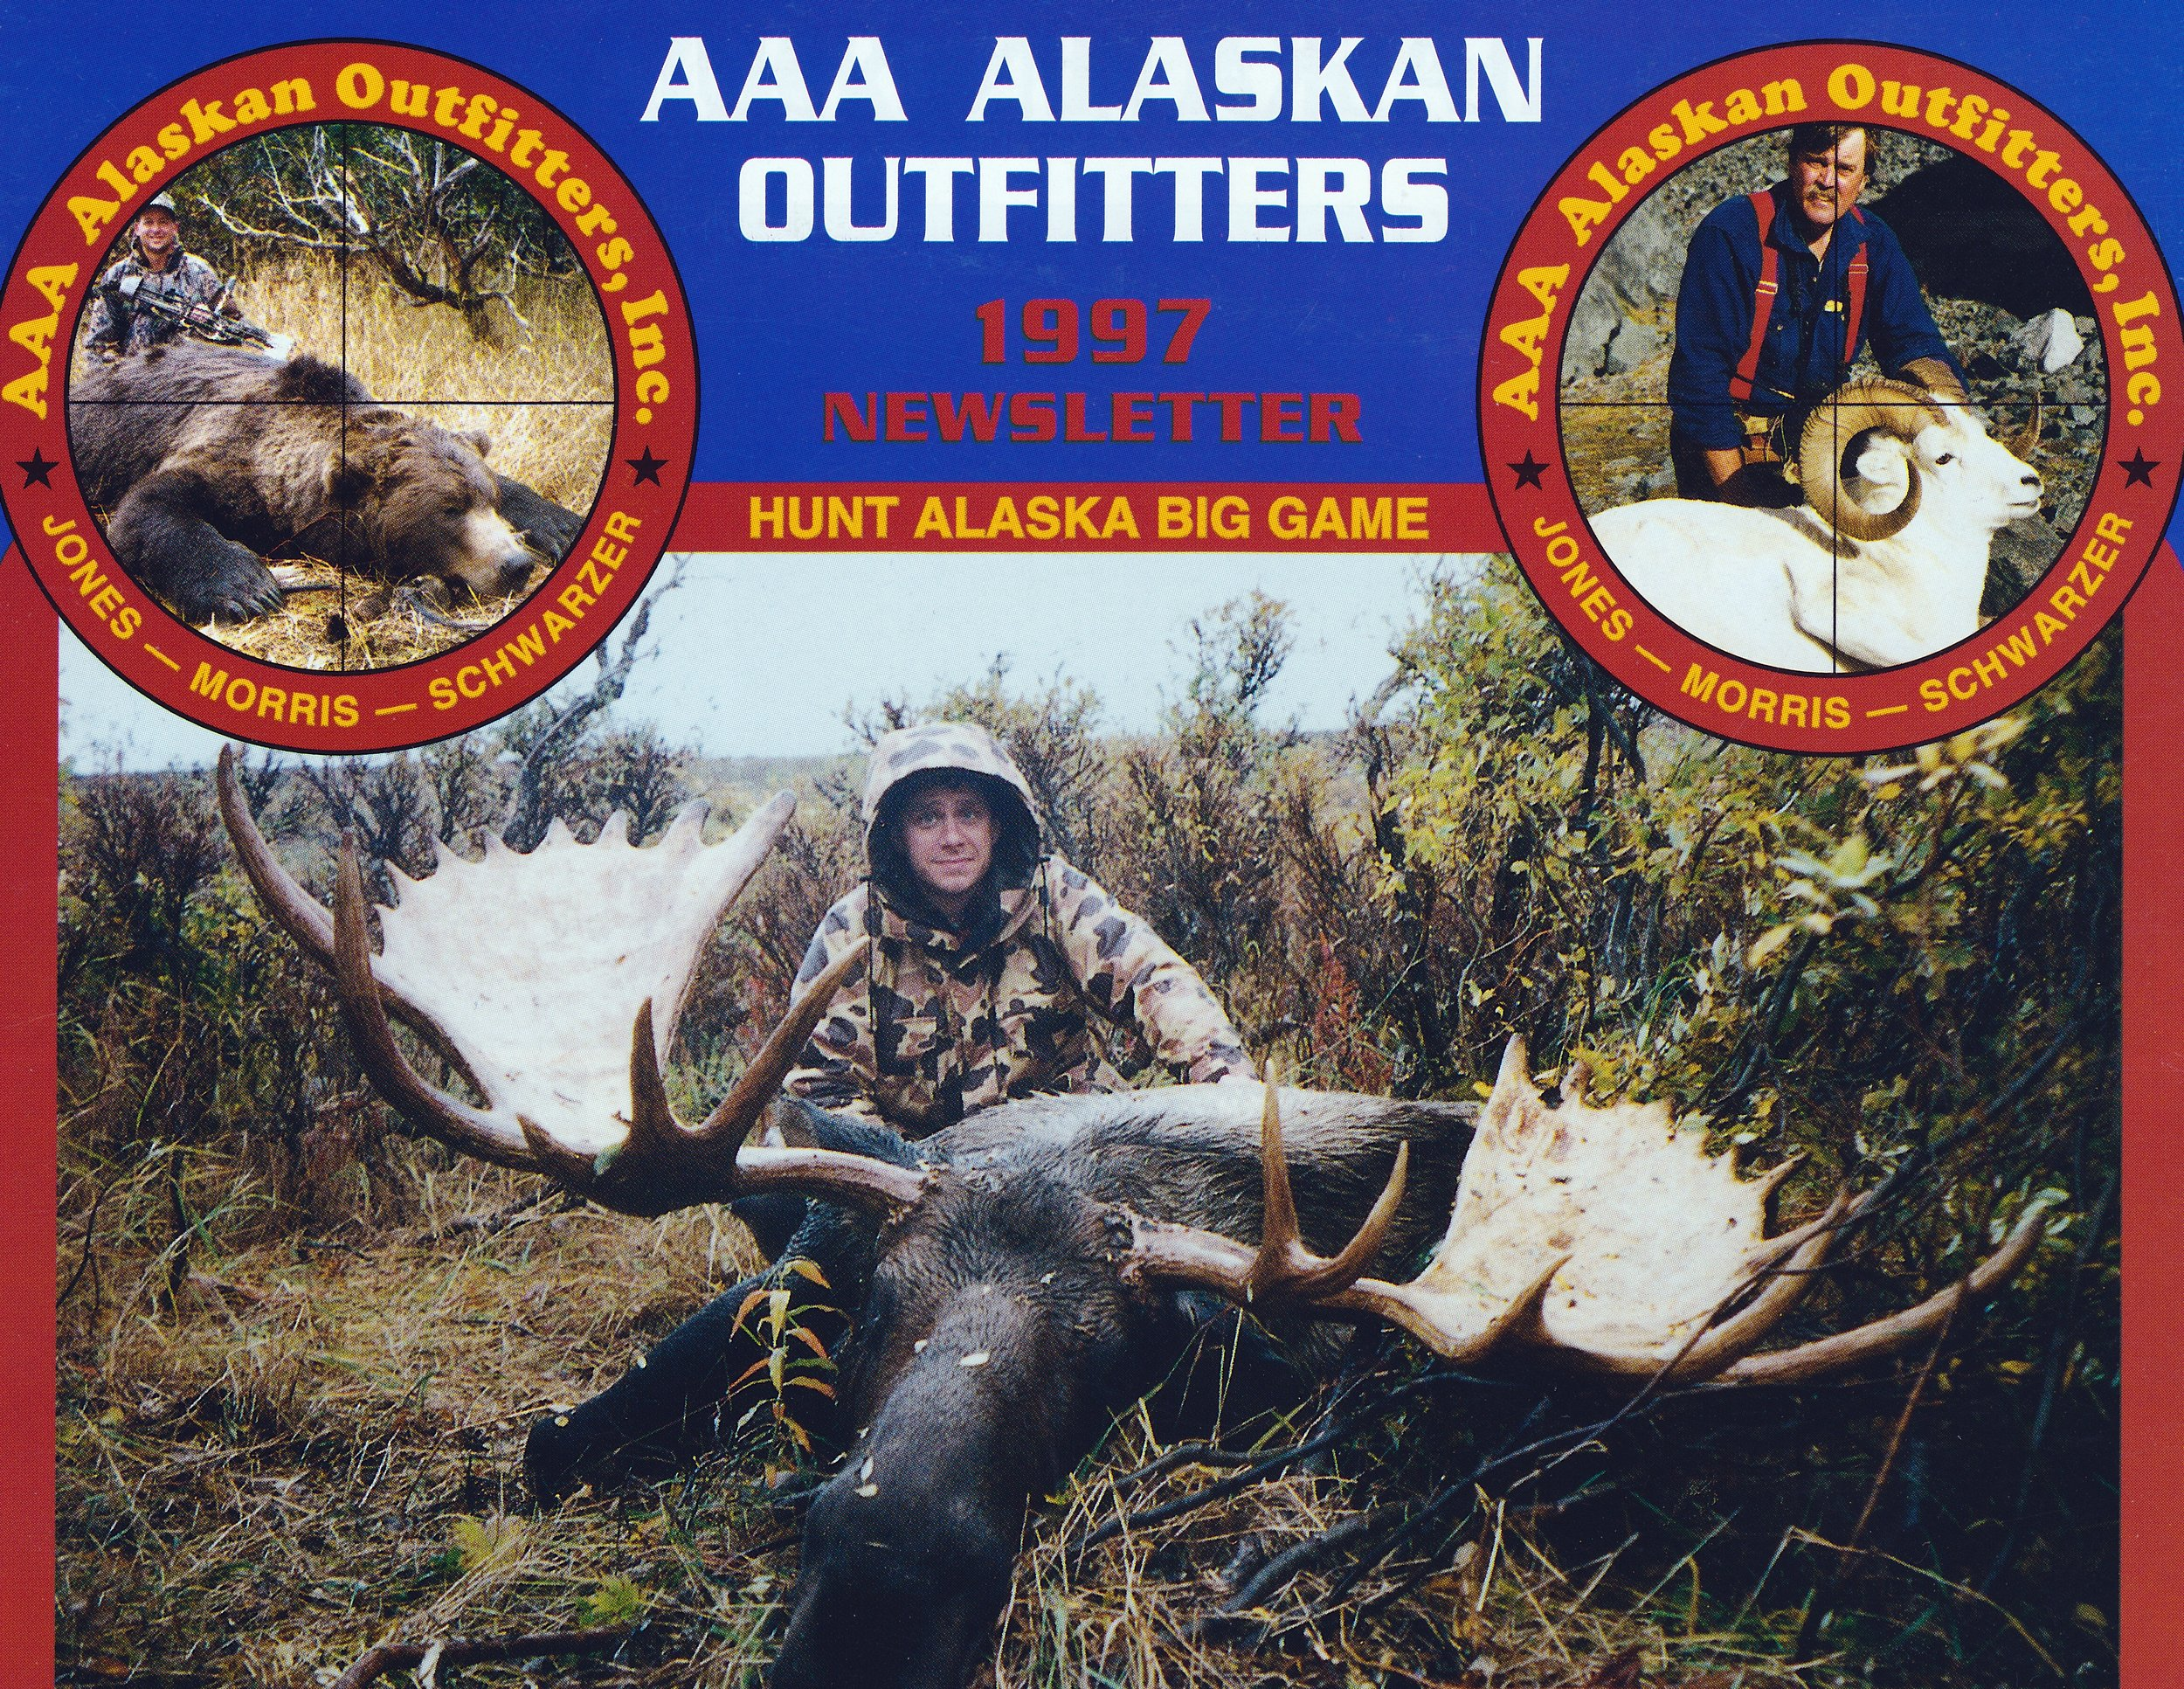 """Craig Hoskin, AZ, with his 73"""" moose. This was the largest moose taken in '97 and was taken in Western Alaska. His guide was Sagen Juliussen. The packers called this pack, """"the pack from hell."""" A mile and a half in a swamp going up hill the whole way!!"""